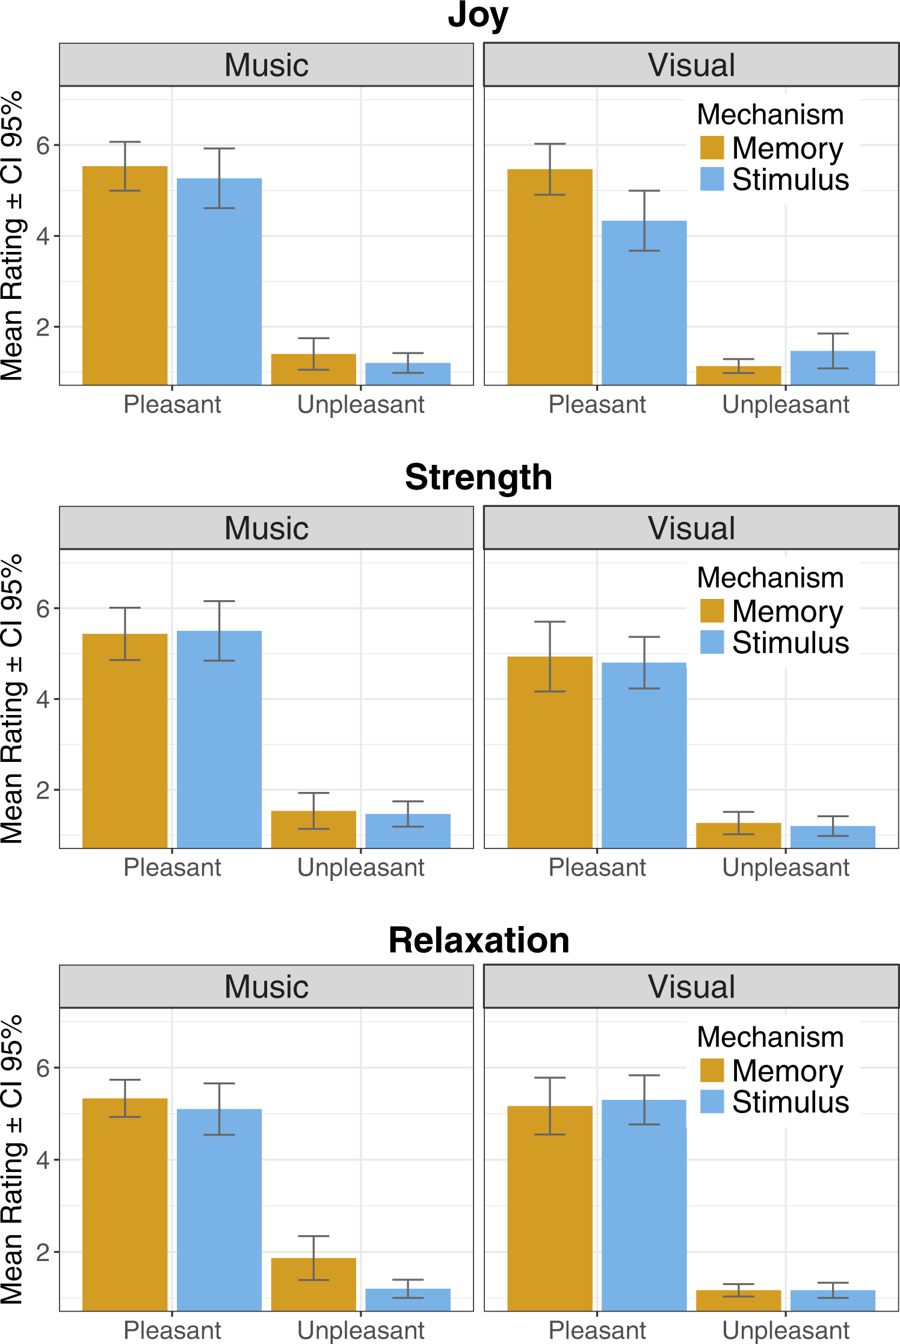 Mean ratings across the Mechanisms for positive emotions (Joy, Strength, and Relaxation).